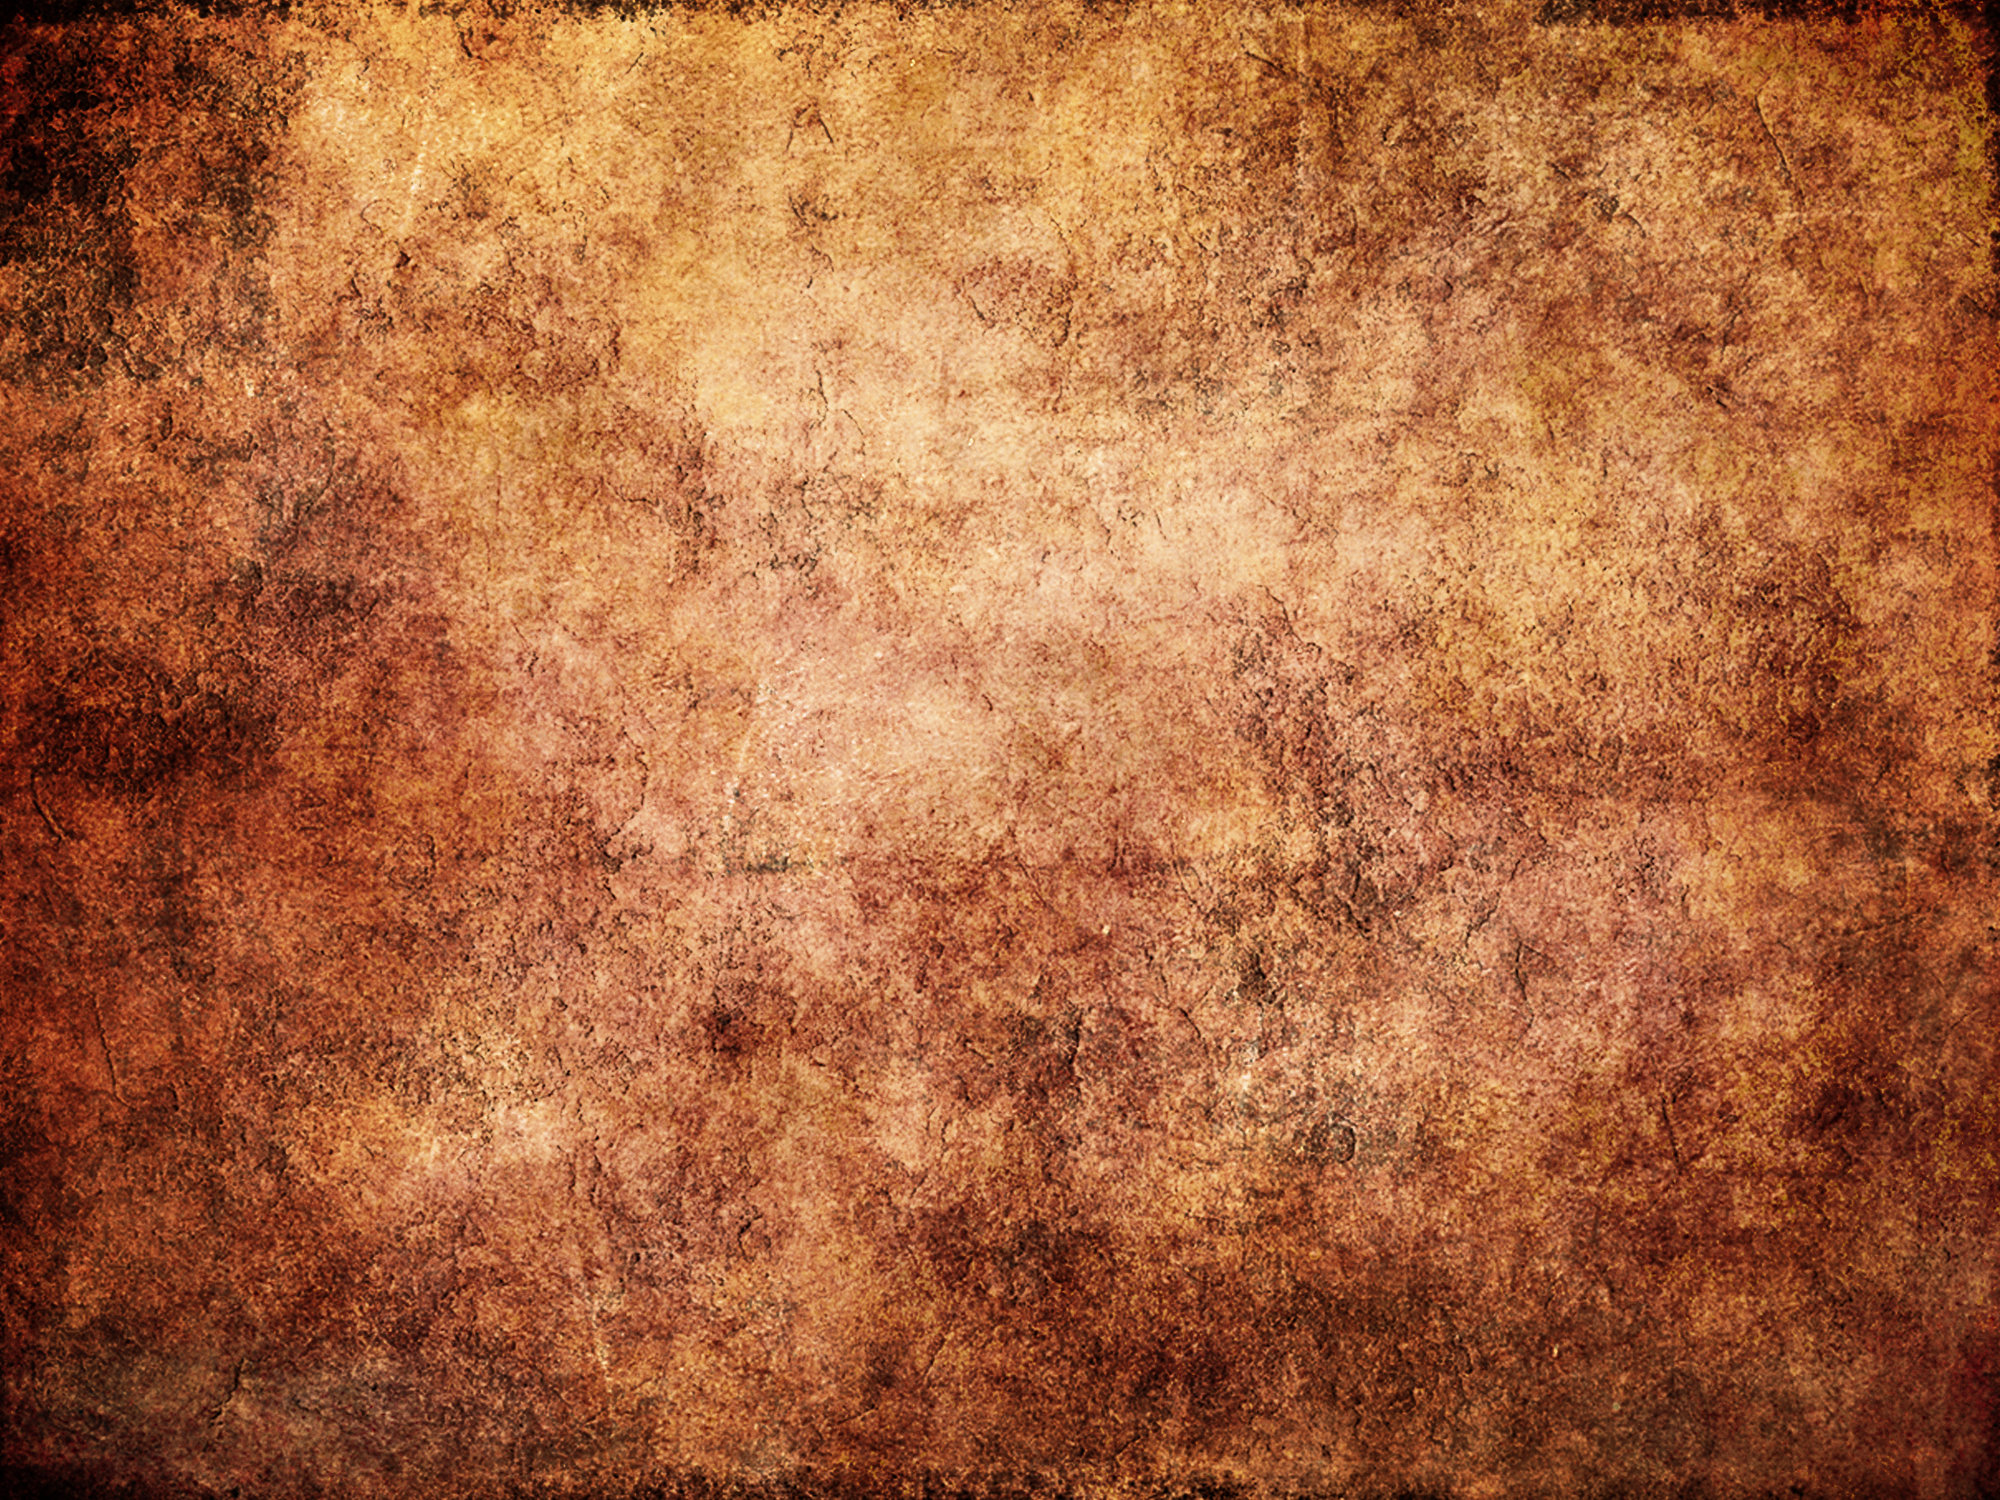 UNRESTRICTED - Digital Grunge Texture 17 by frozenstocks on DeviantArt